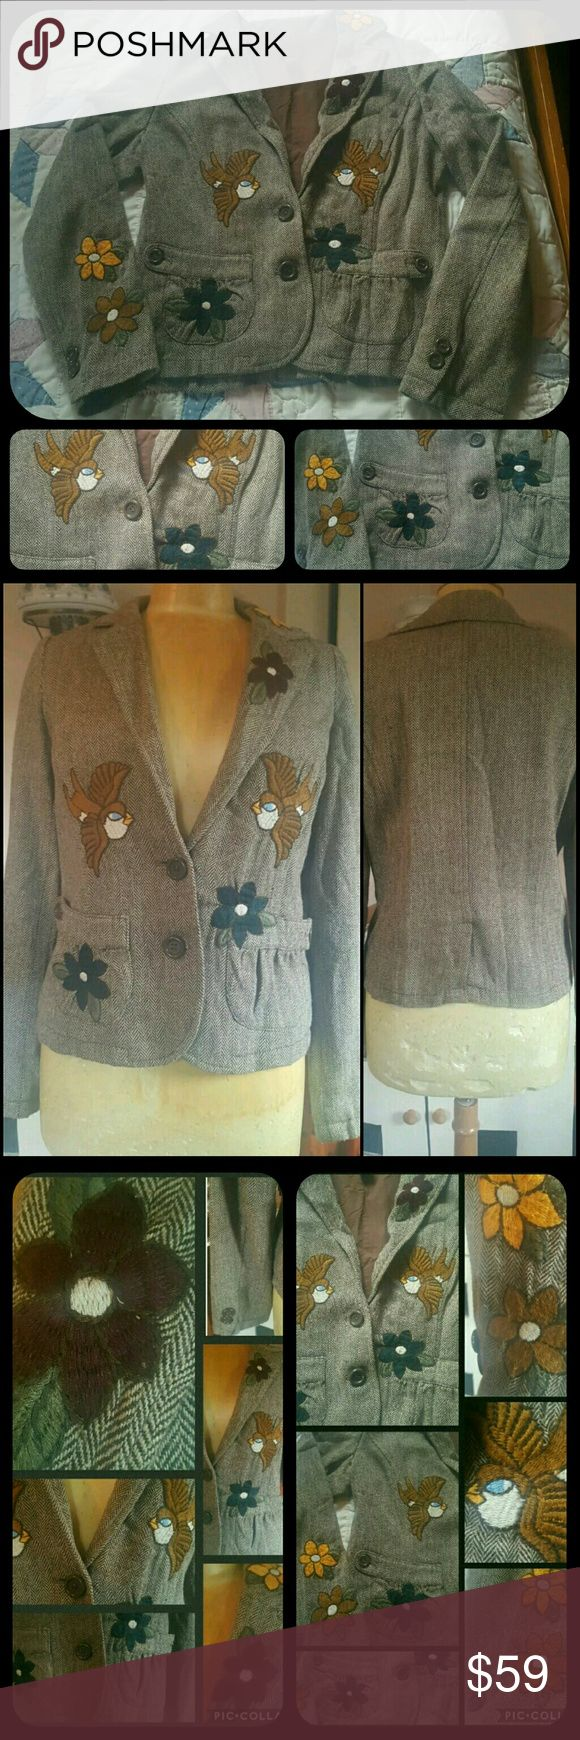 Shabby Chic EMBROIDERED rumpled Vtg Insp Jacket soo sahweet! Brand O&G ORIGINAL &GLAMOUR If u like brand new perfect items  not best 4u.if u like clothing w/character, a bit of the wabi sabi, def vtg.insp grungy,rumpled old man Herringbone jacket, i only wore  few times, but does have some fuzzing & pilling, but adds 2.overall SHABBY CHIC look! A few pulls & embroidery is a little fuzzy & pulled  but overall EXQUISITE! this reminds me of Joystick jackets,but i paid a ton more for those!! FAR…